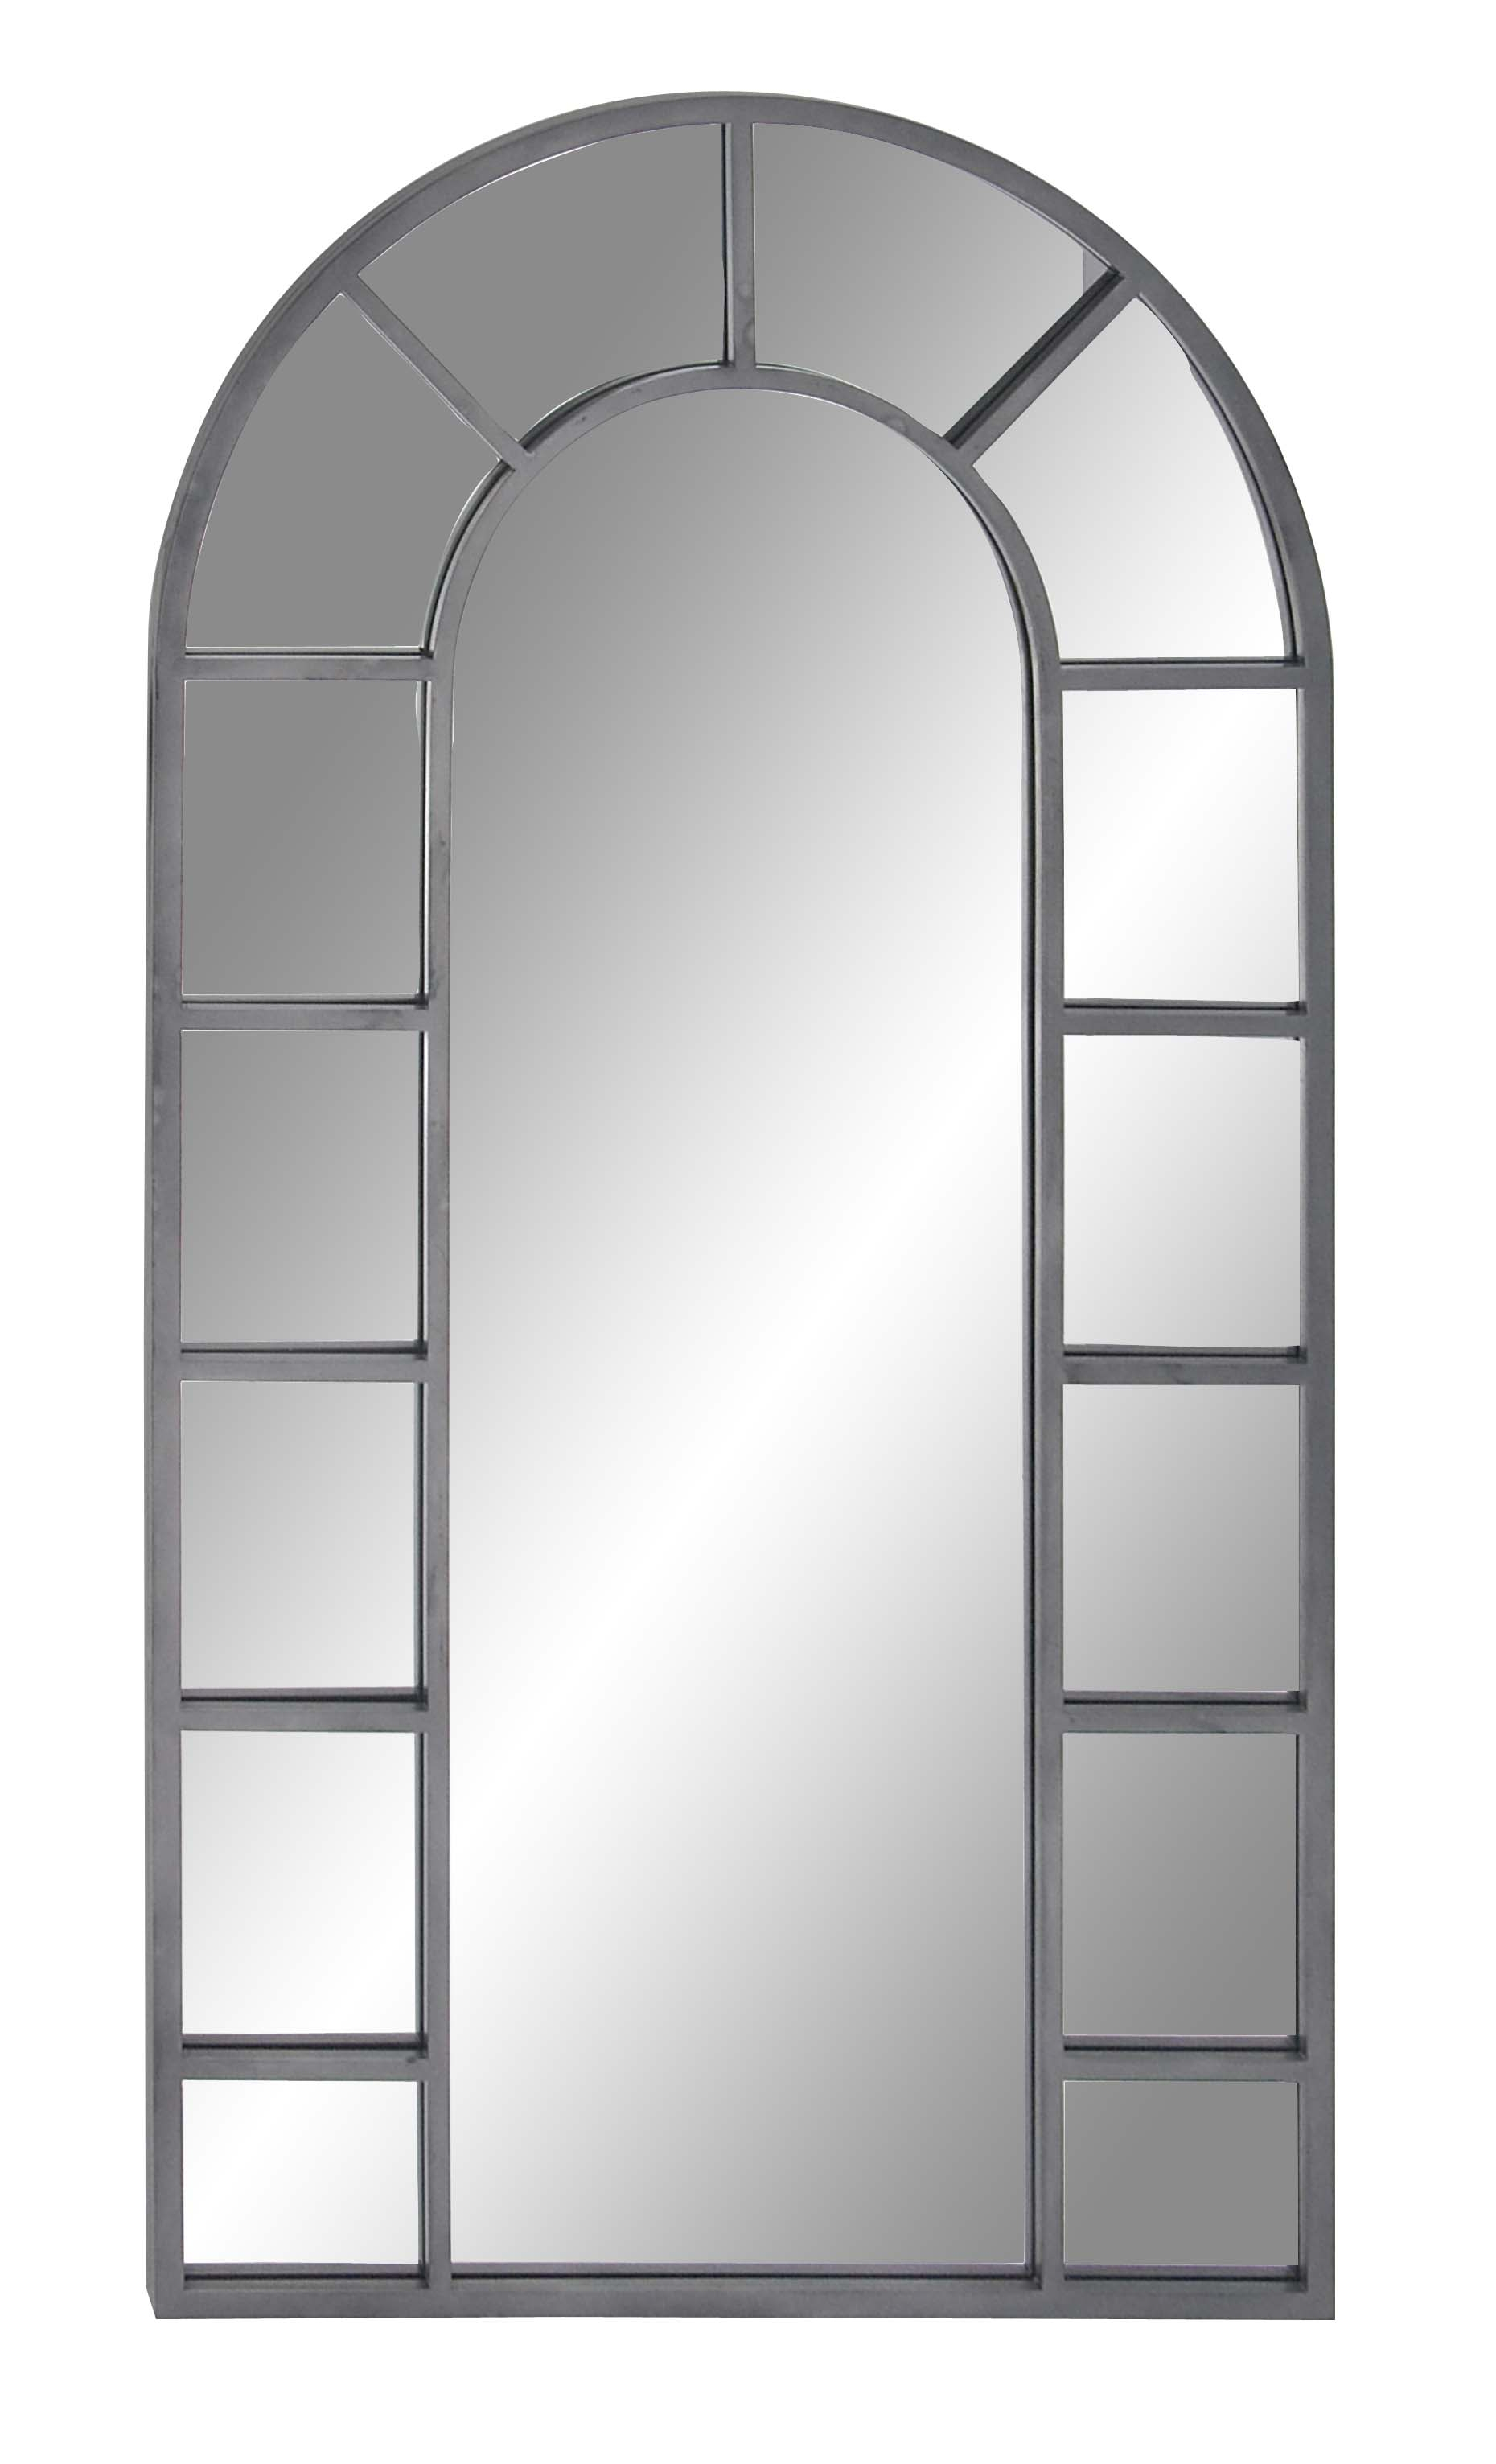 Decmode Contemporary Wood And Metal Arched Black Wall Mirror, Black With Regard To Arch Vertical Wall Mirrors (Gallery 28 of 30)